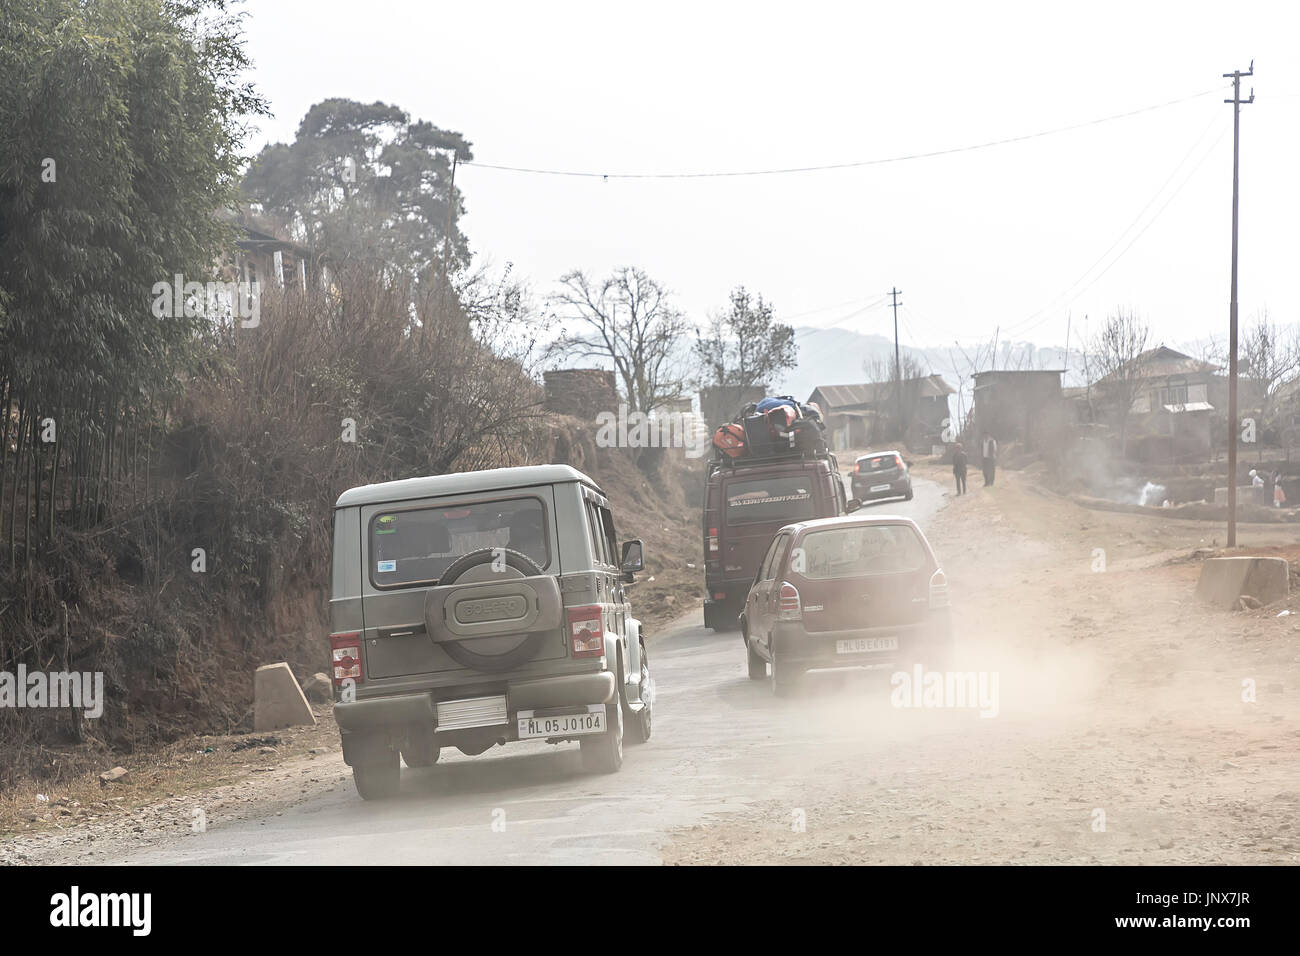 Dust in the air thrown up by traffic, Meghalaya, India - Stock Image